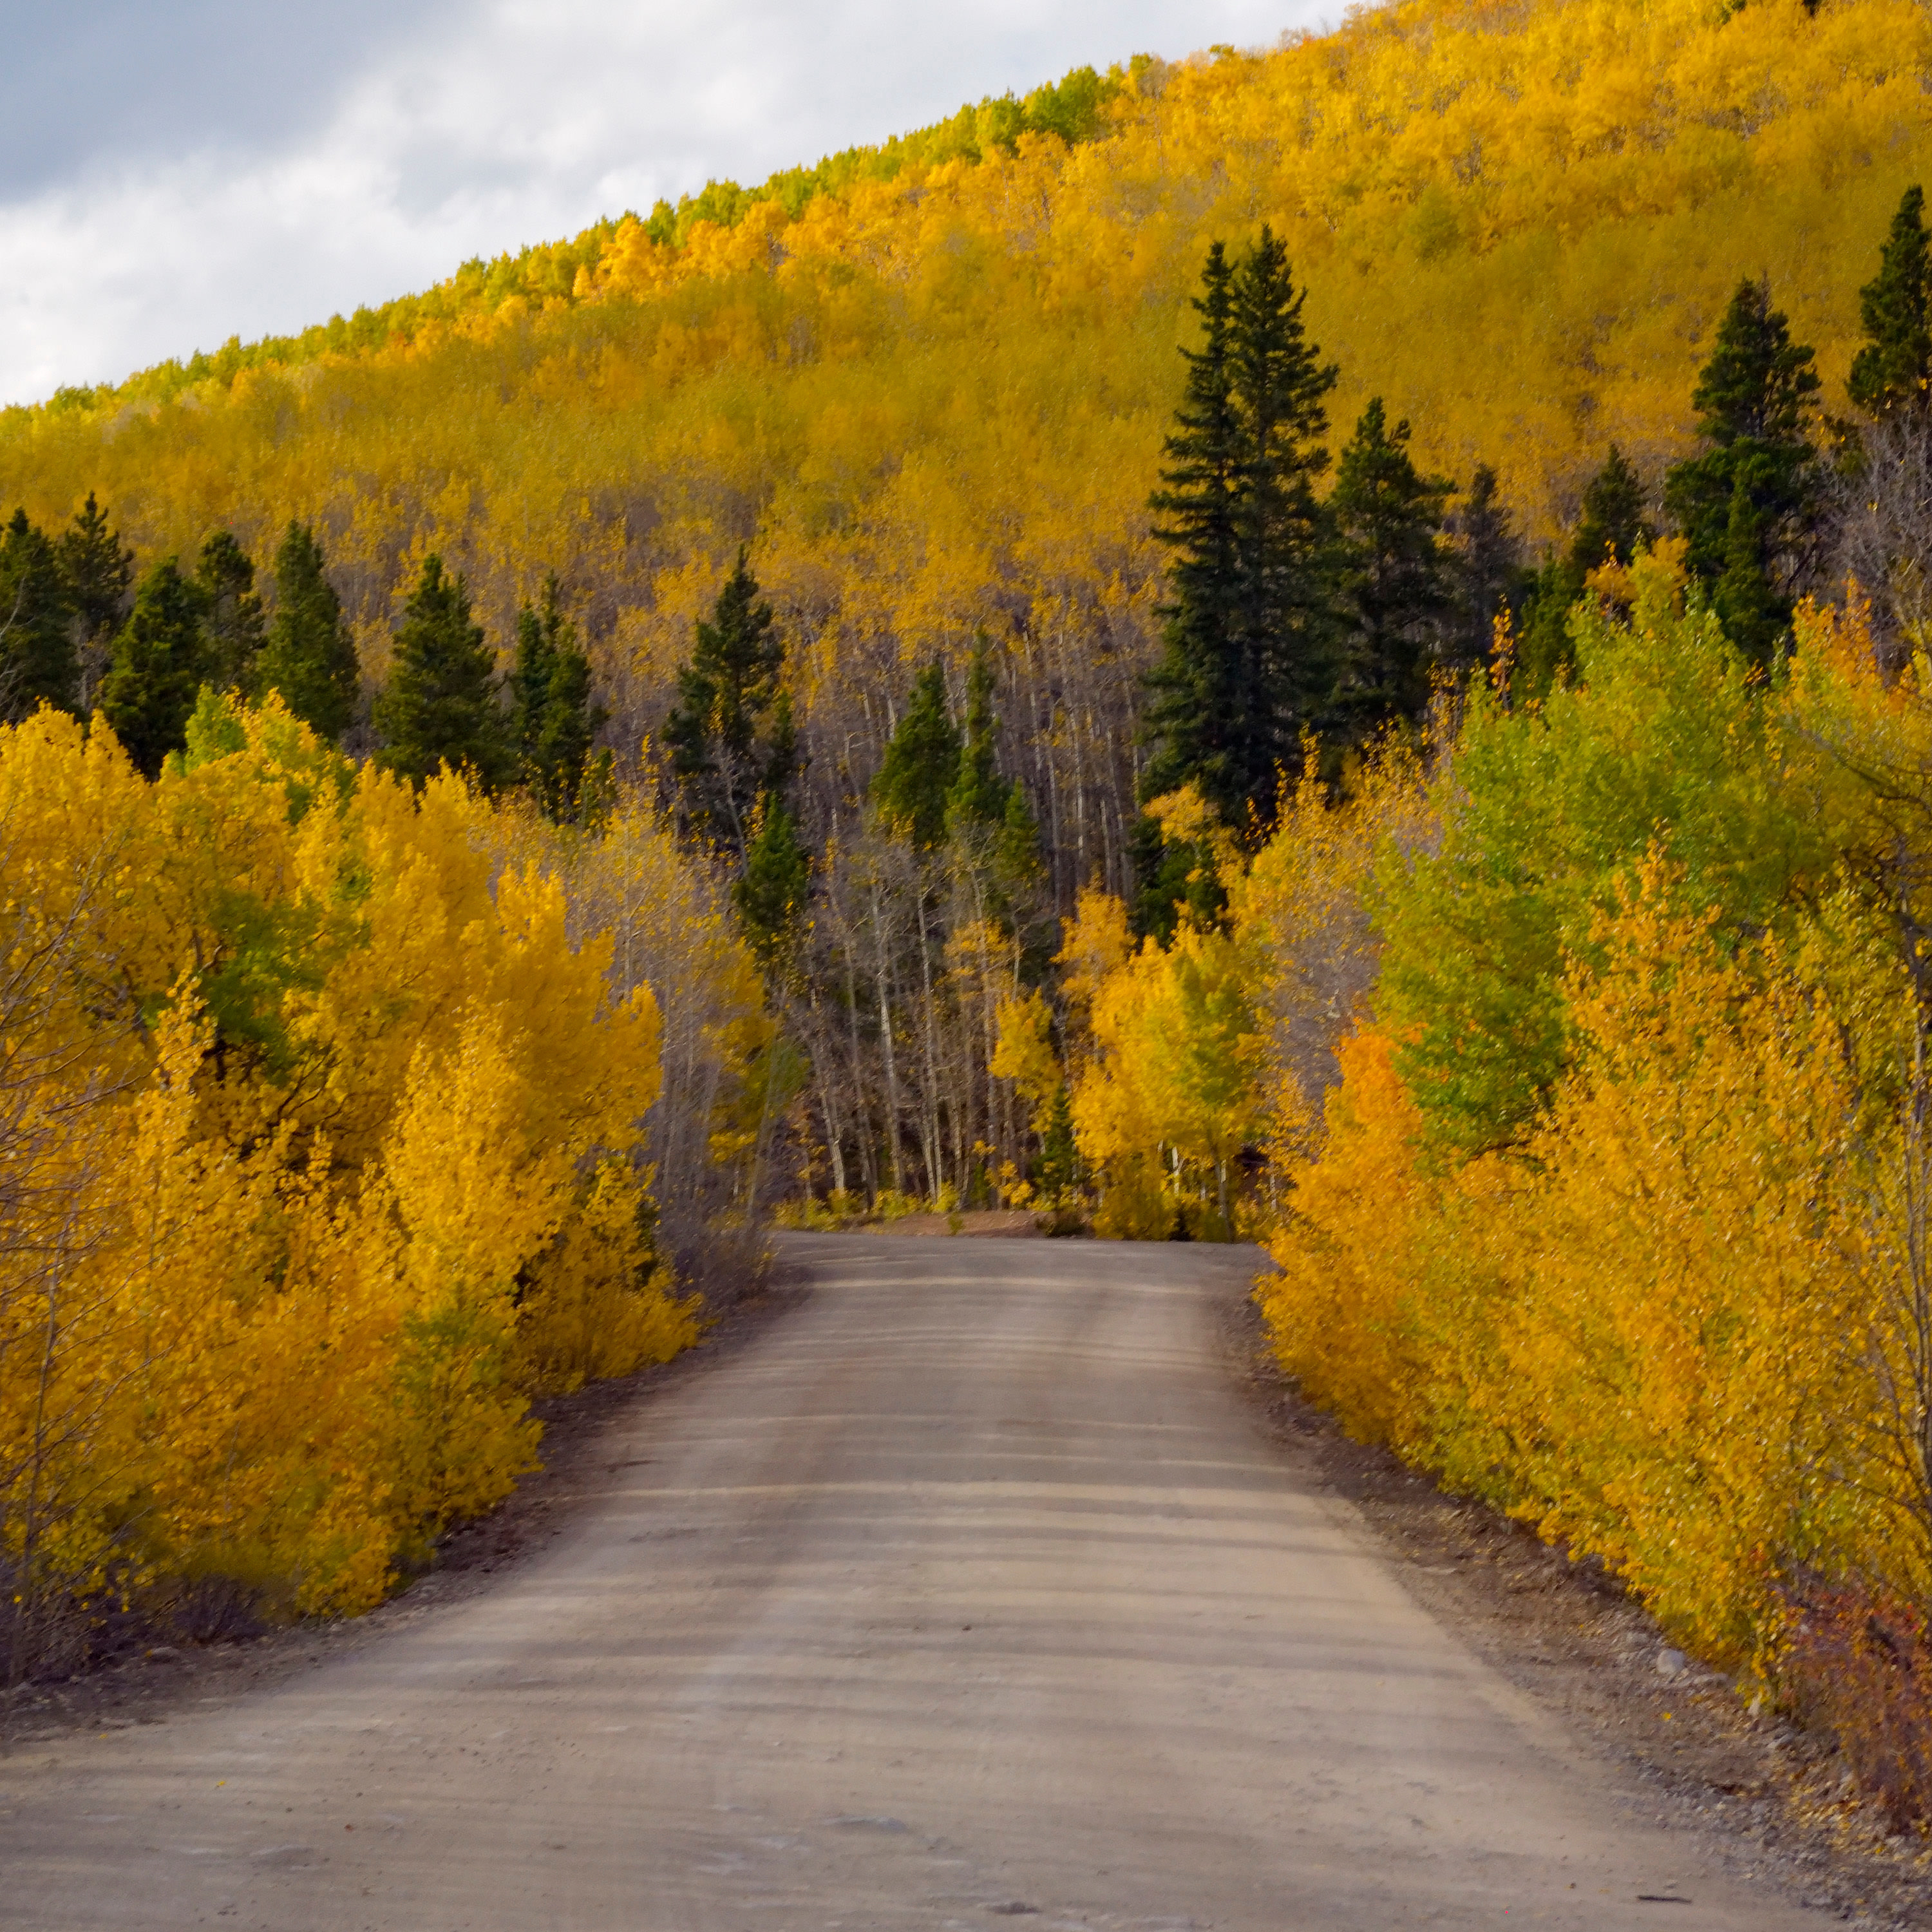 <div class='title'>           Aspens on Boreas Pass Road         </div>                 <div class='description'>           Aspen trees in fall color surround Boreas Pass Road in the Pike National Forest         </div>